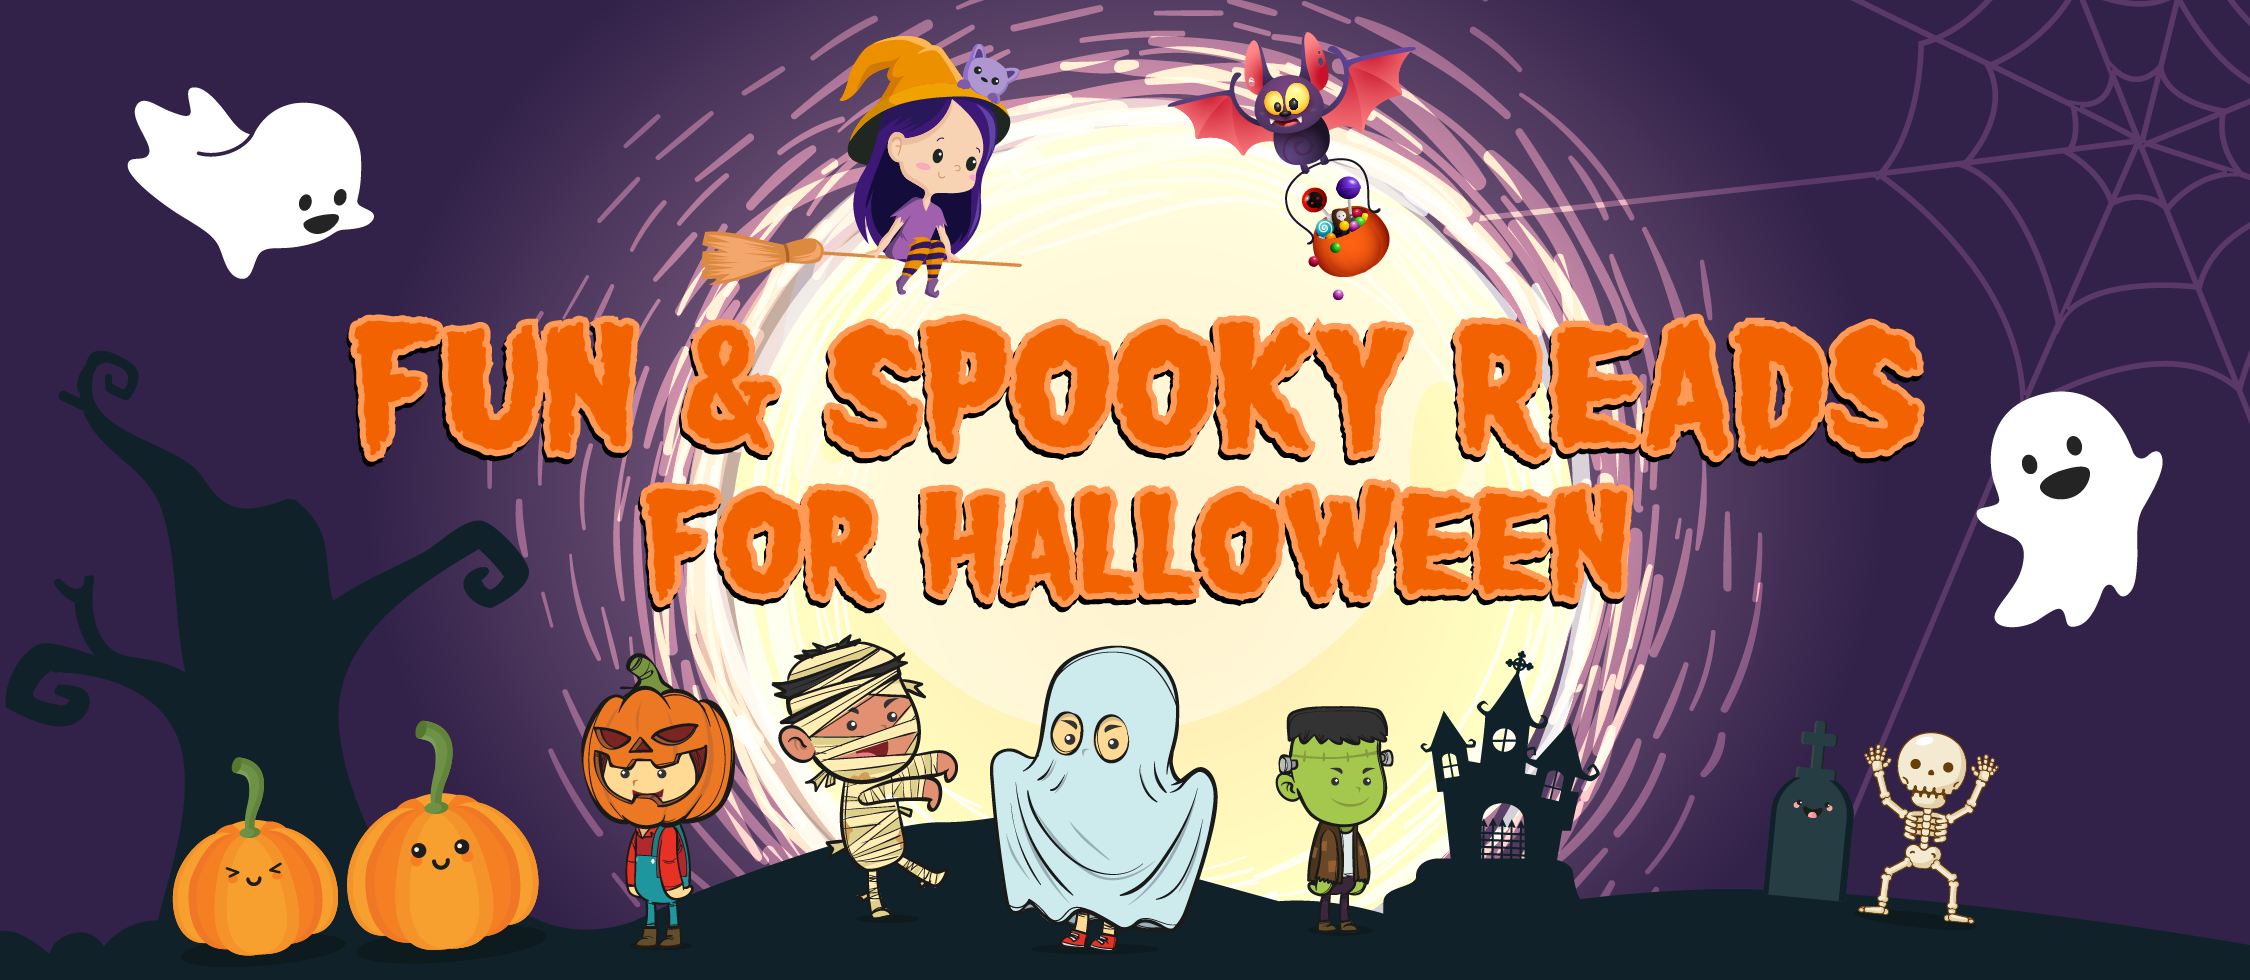 Scholastic spooky reads